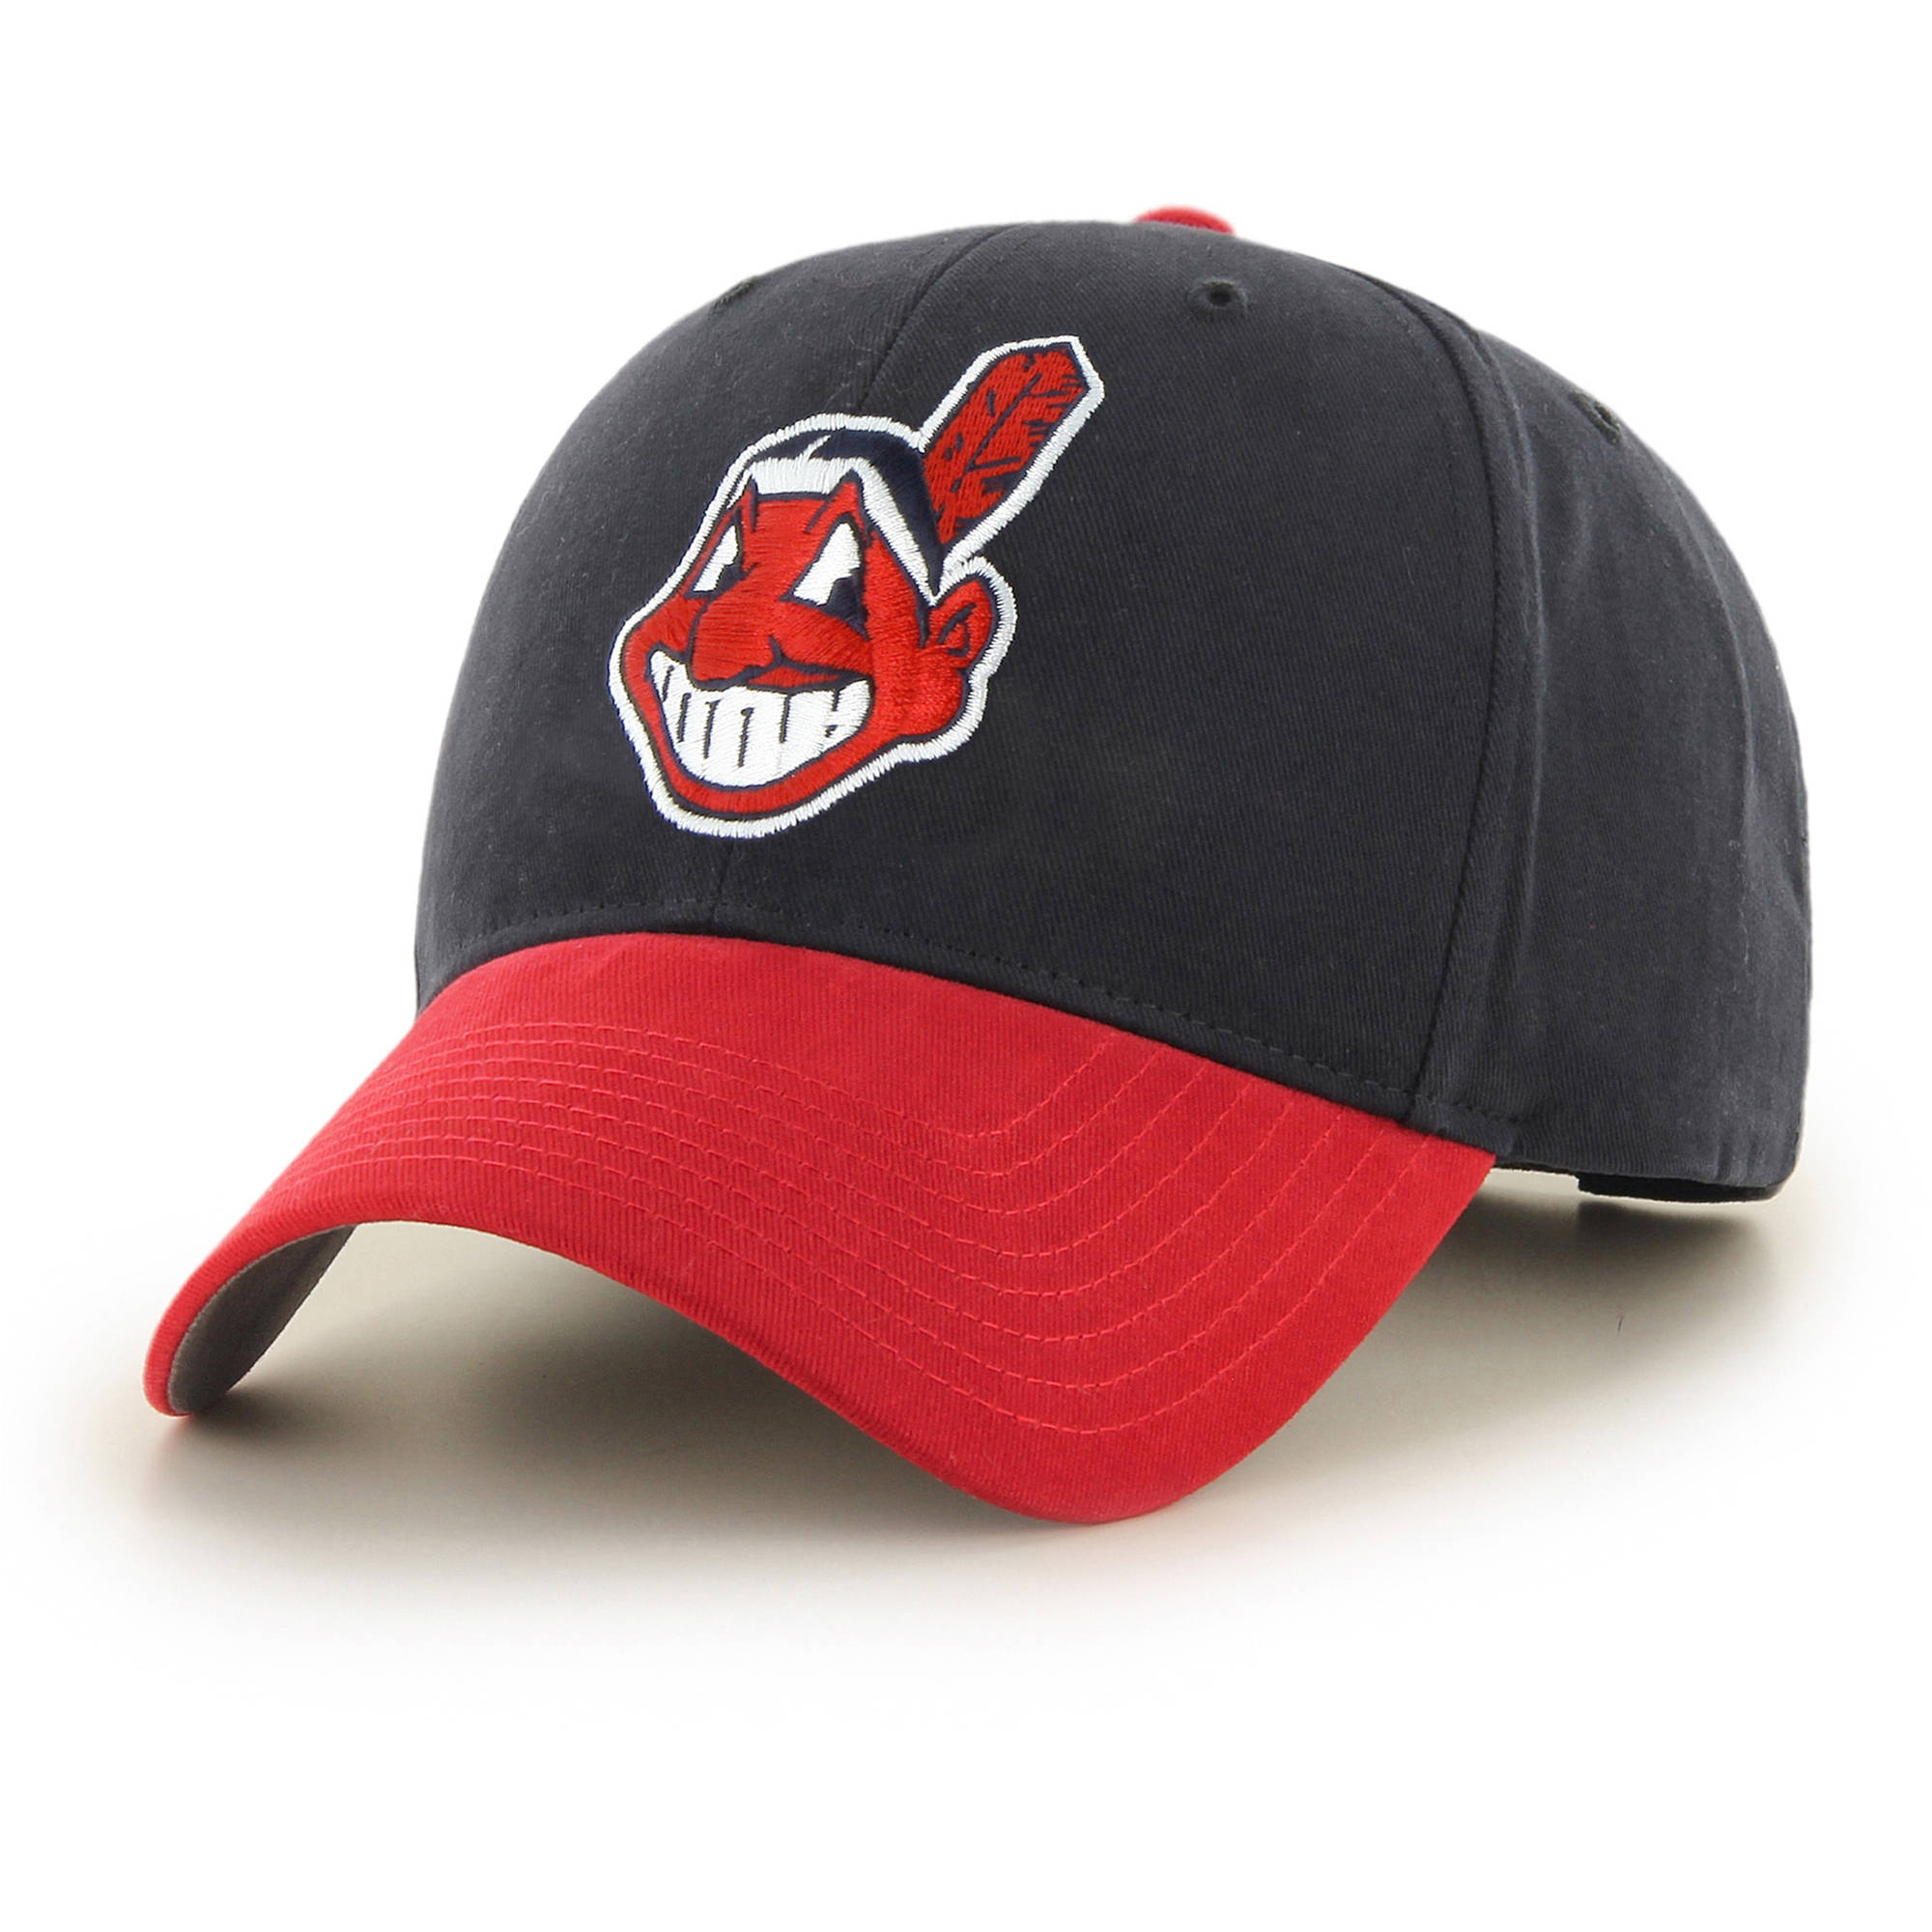 Fan Favorite - MLB Basic Cap, Cleveland Indians